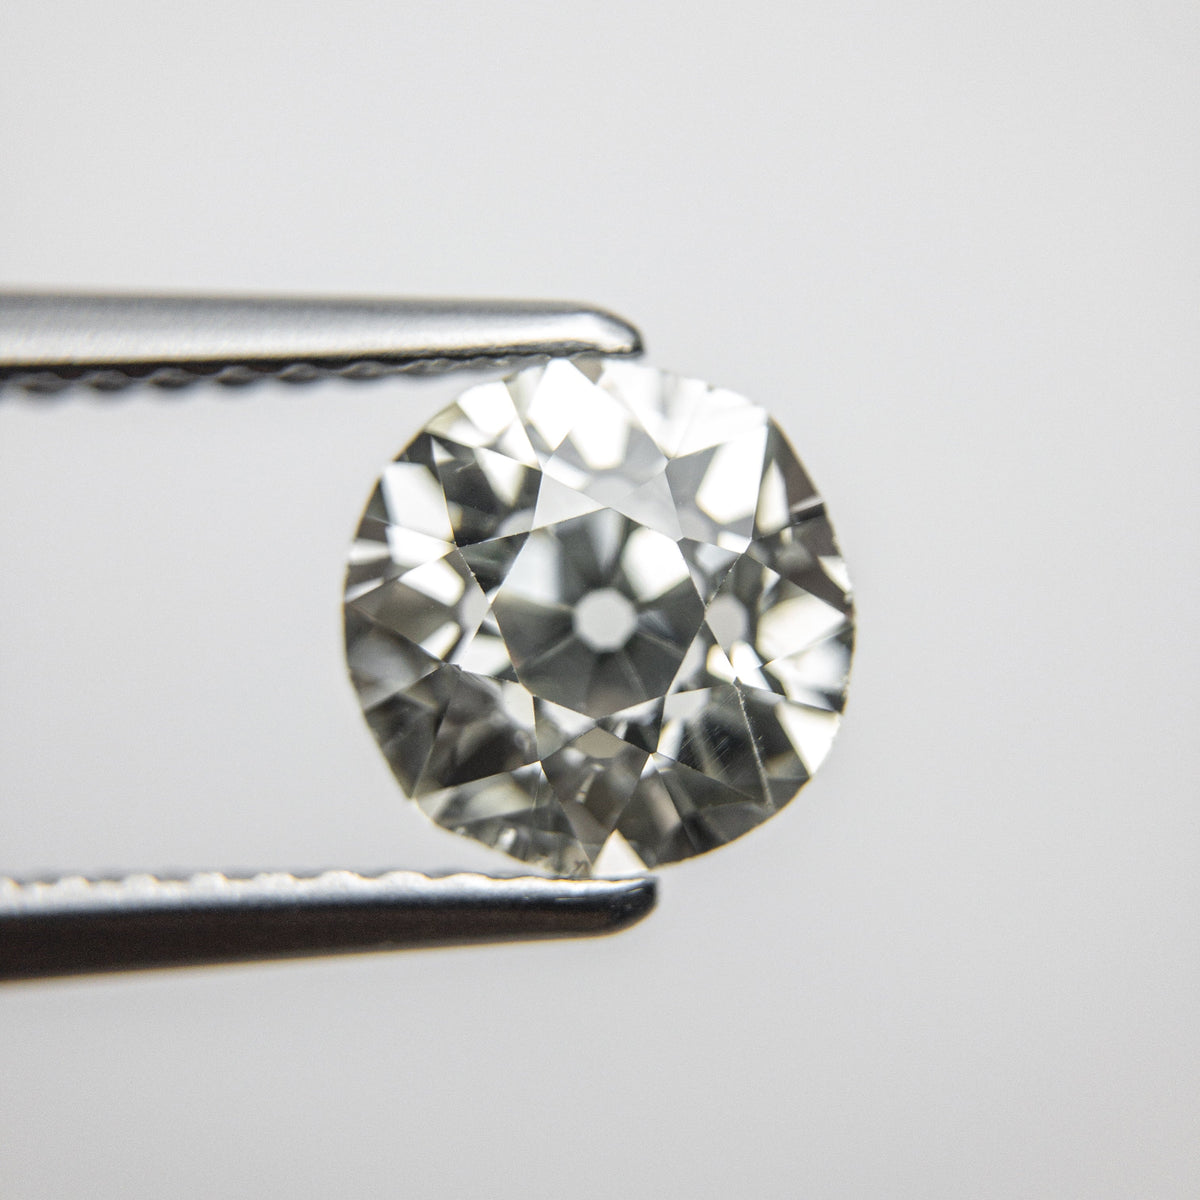 1.46ct 7.29x7.00x4.69mm GIA VS2 L Old European Cut 18396-01